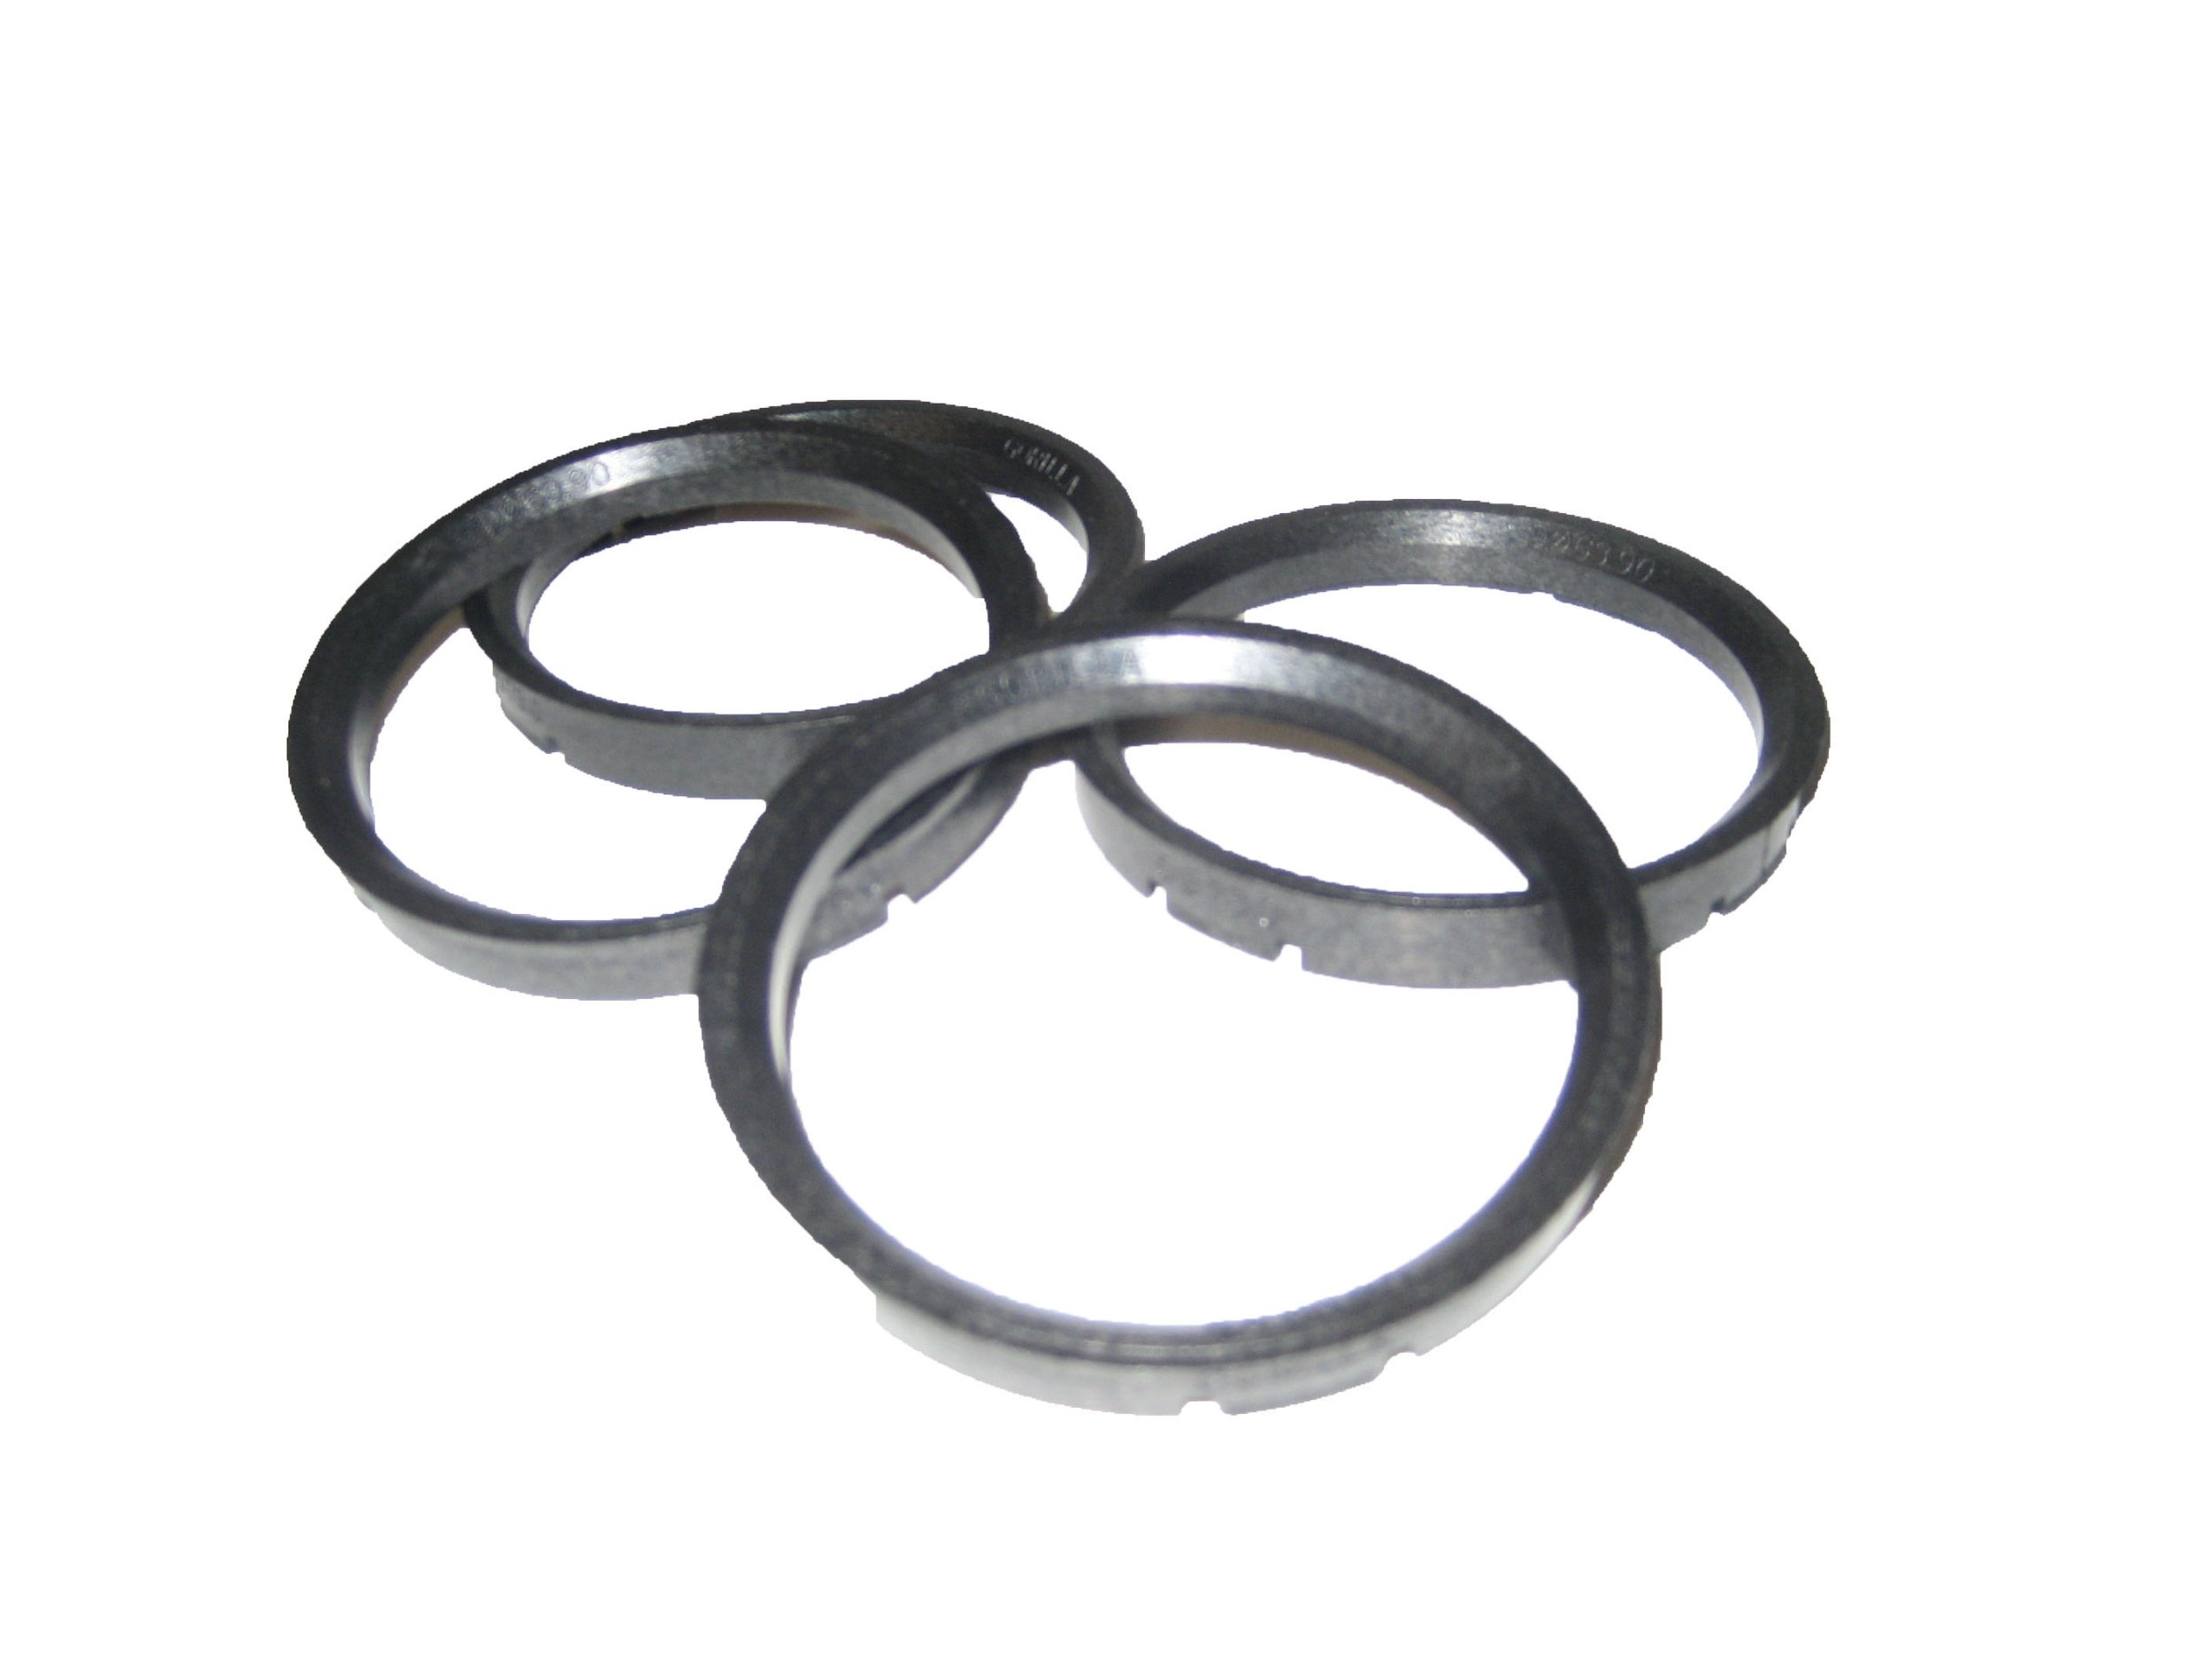 Gorilla Automotive 73-6606 Wheel Hub Centric Rings (73mm OD x 66.06mm ID) - Pack of 4 by Gorilla Automotive (Image #1)